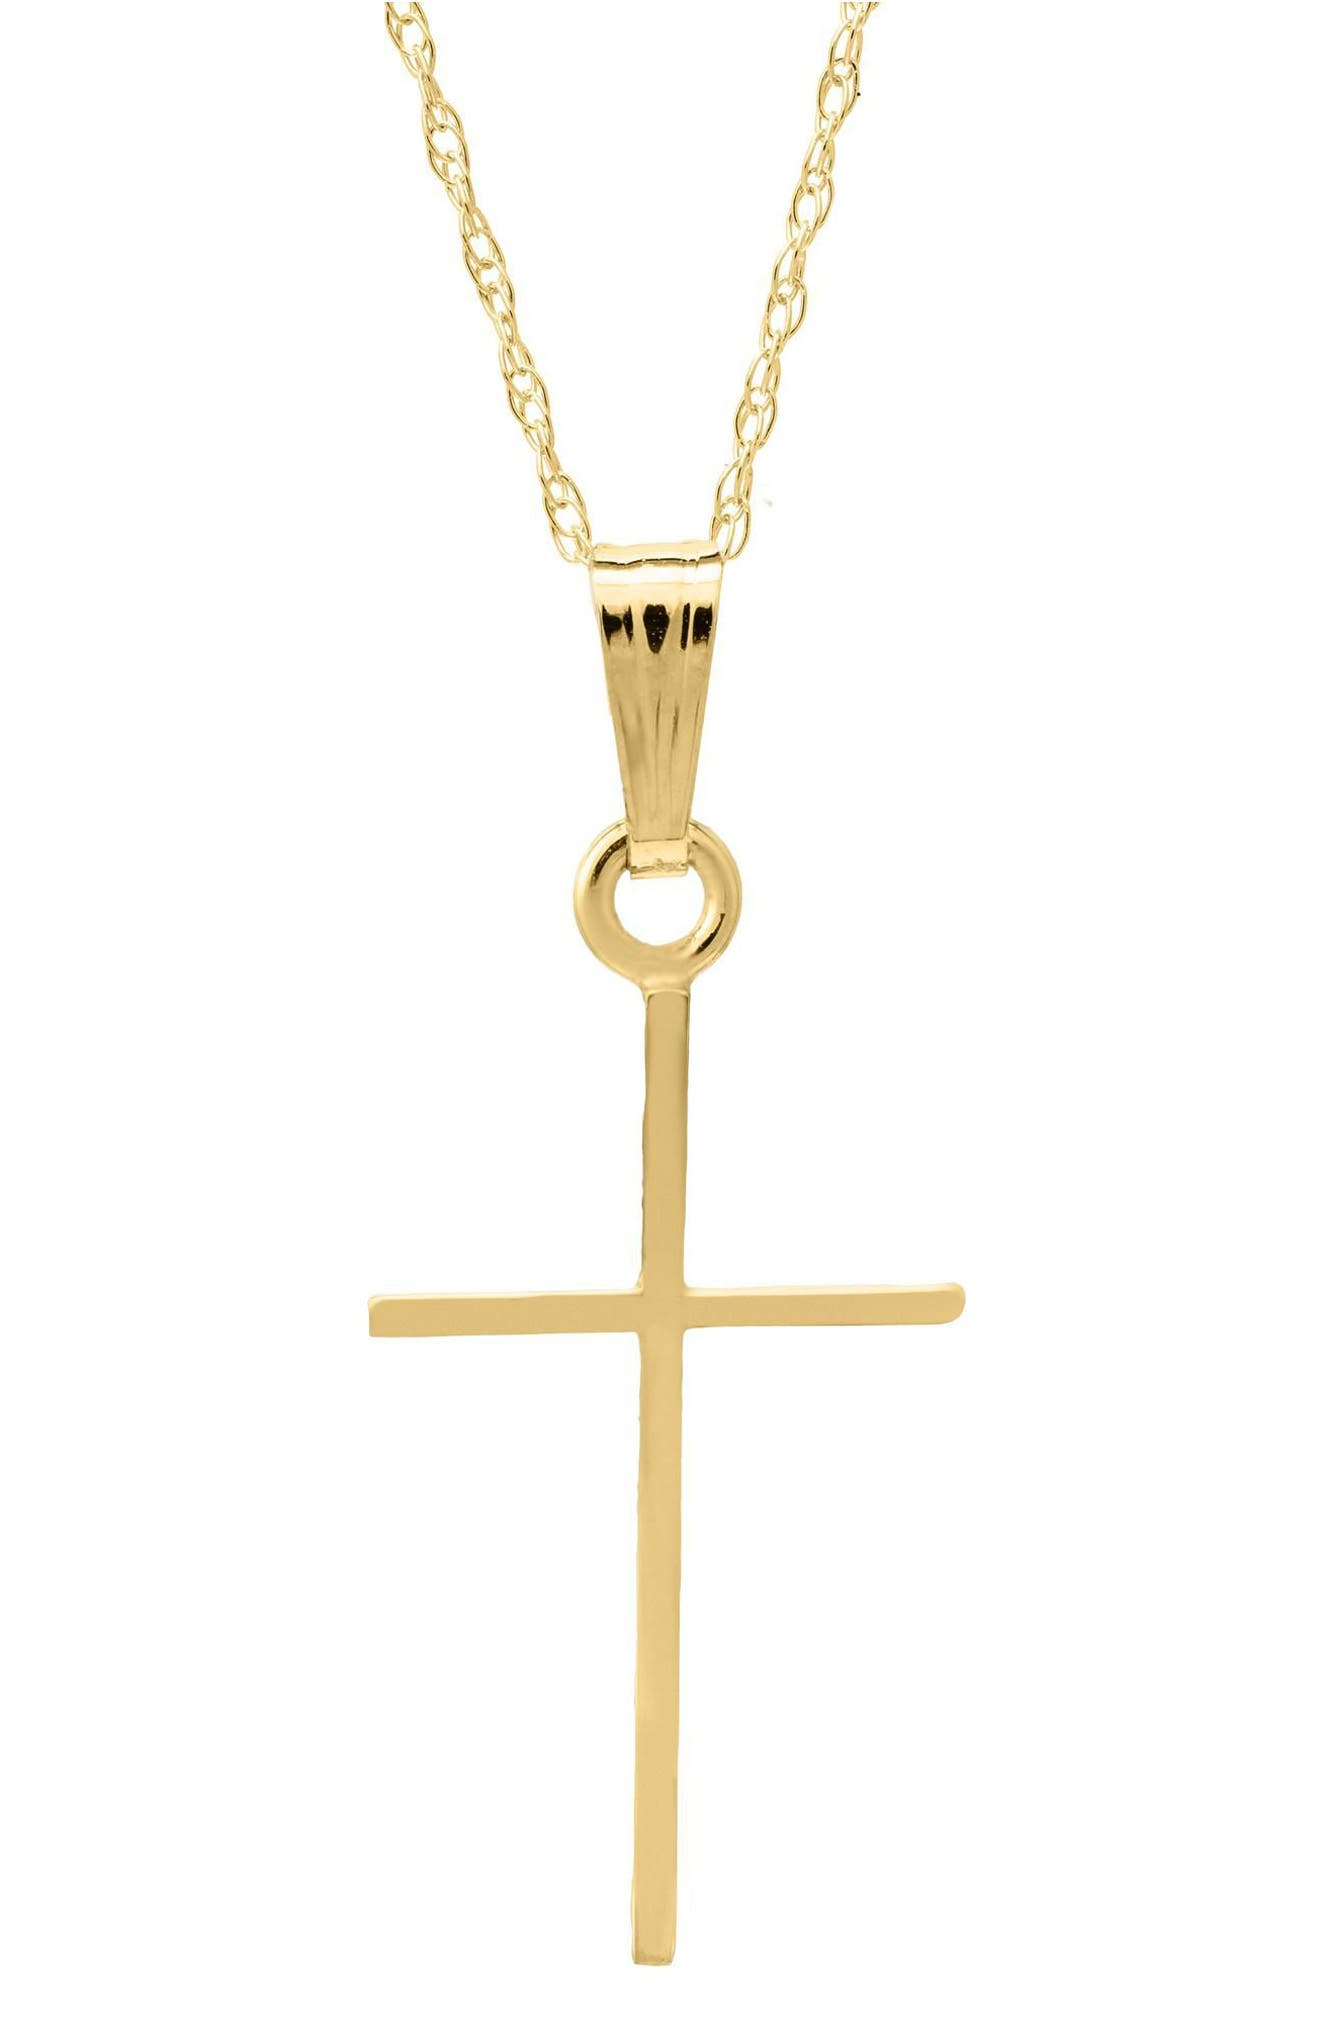 14k Gold Cross Pendant Necklace,                         Main,                         color, Gold